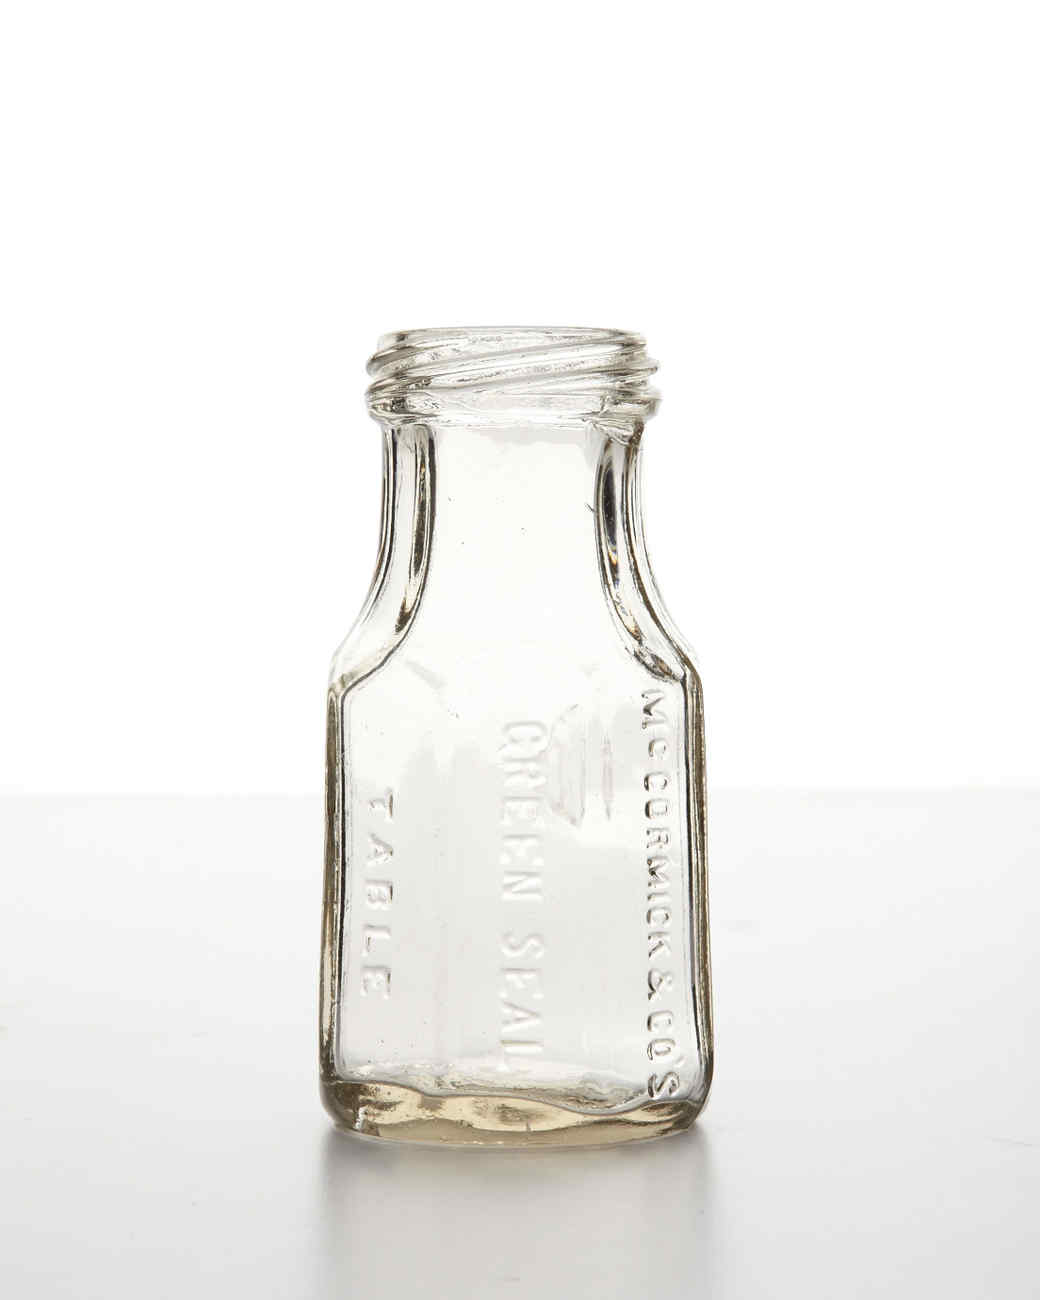 ld105857_0810_bottle_265.jpg